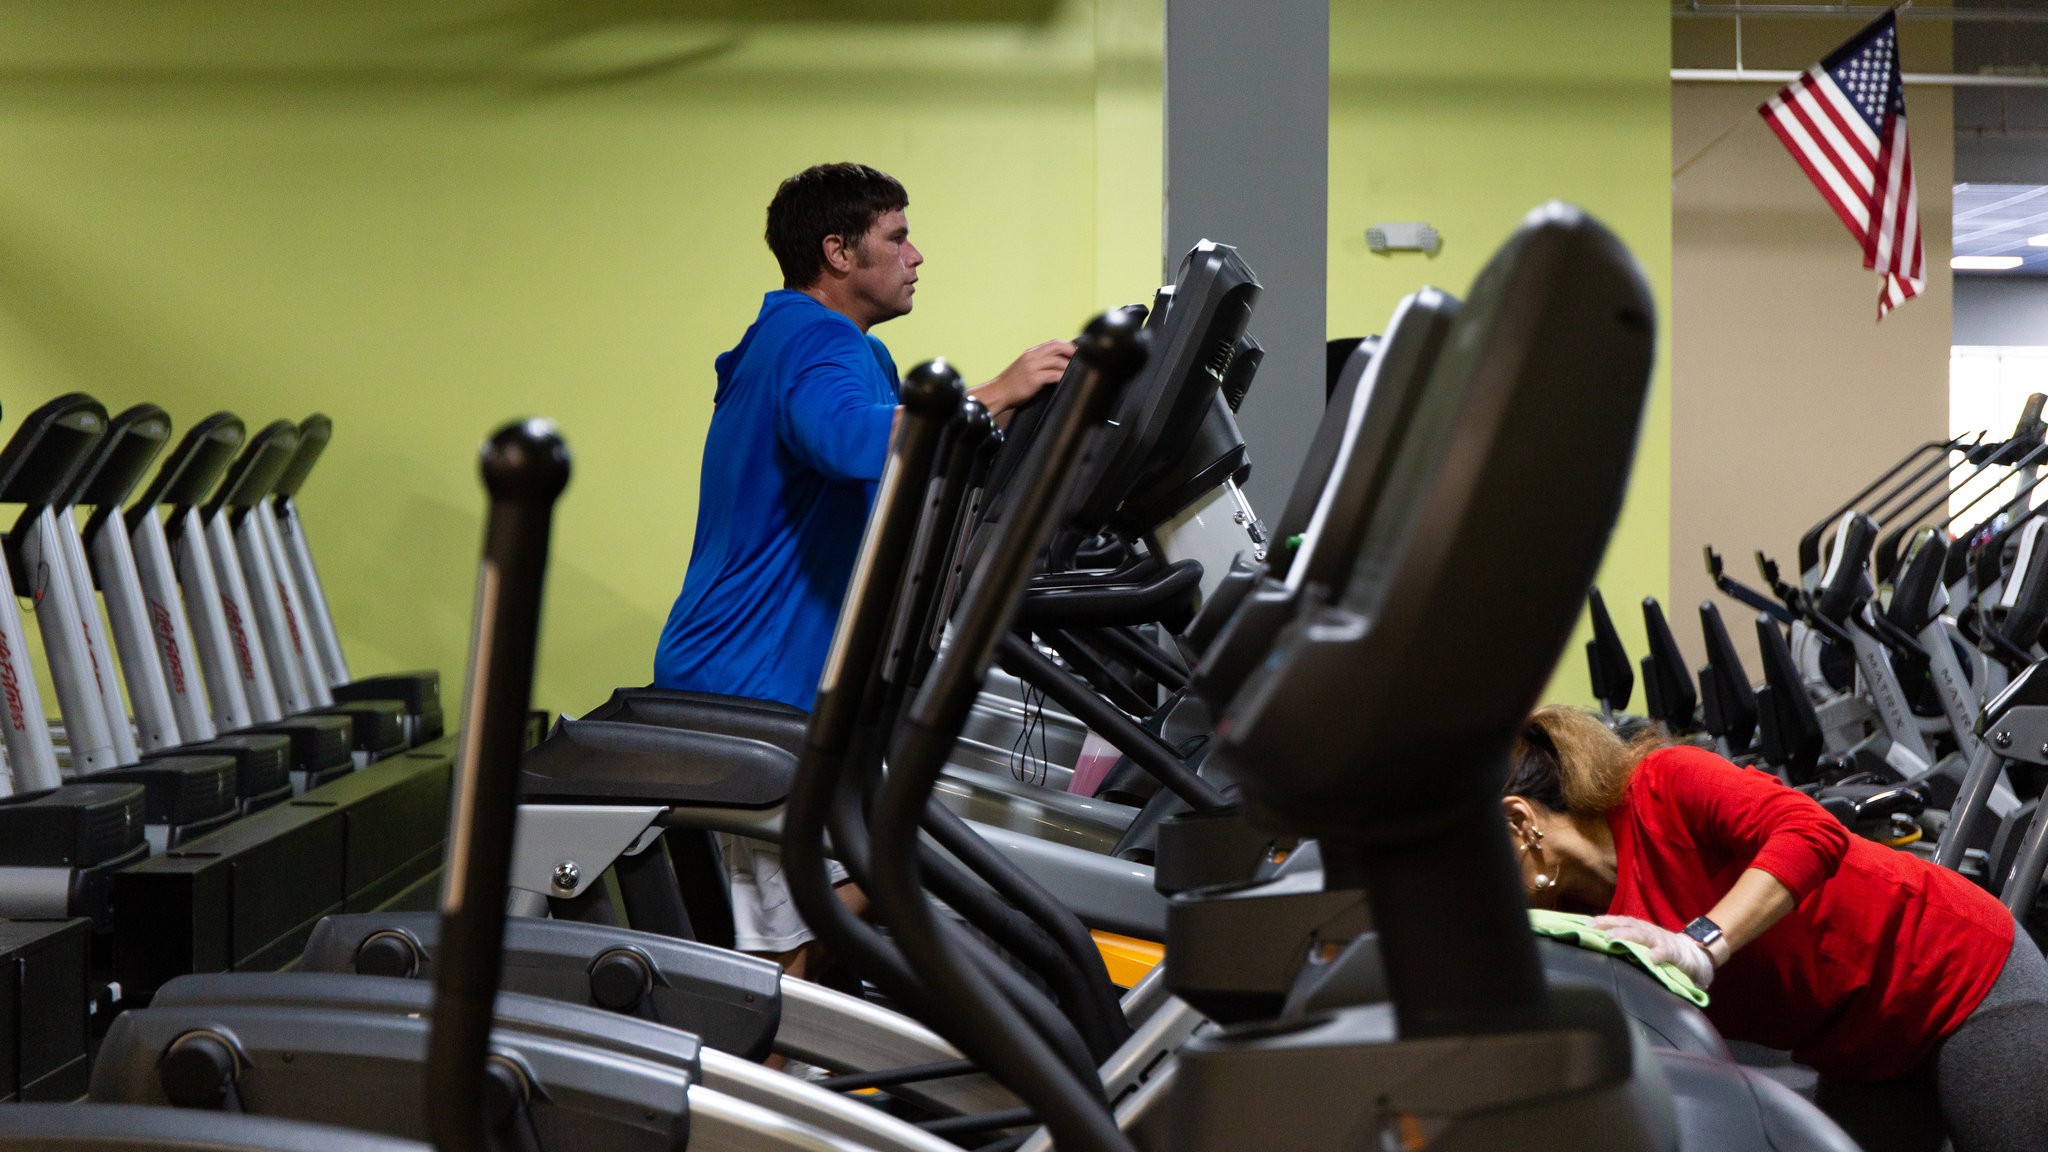 Gym Accessories For Enterprise: The Rules Are Made To Be Broken